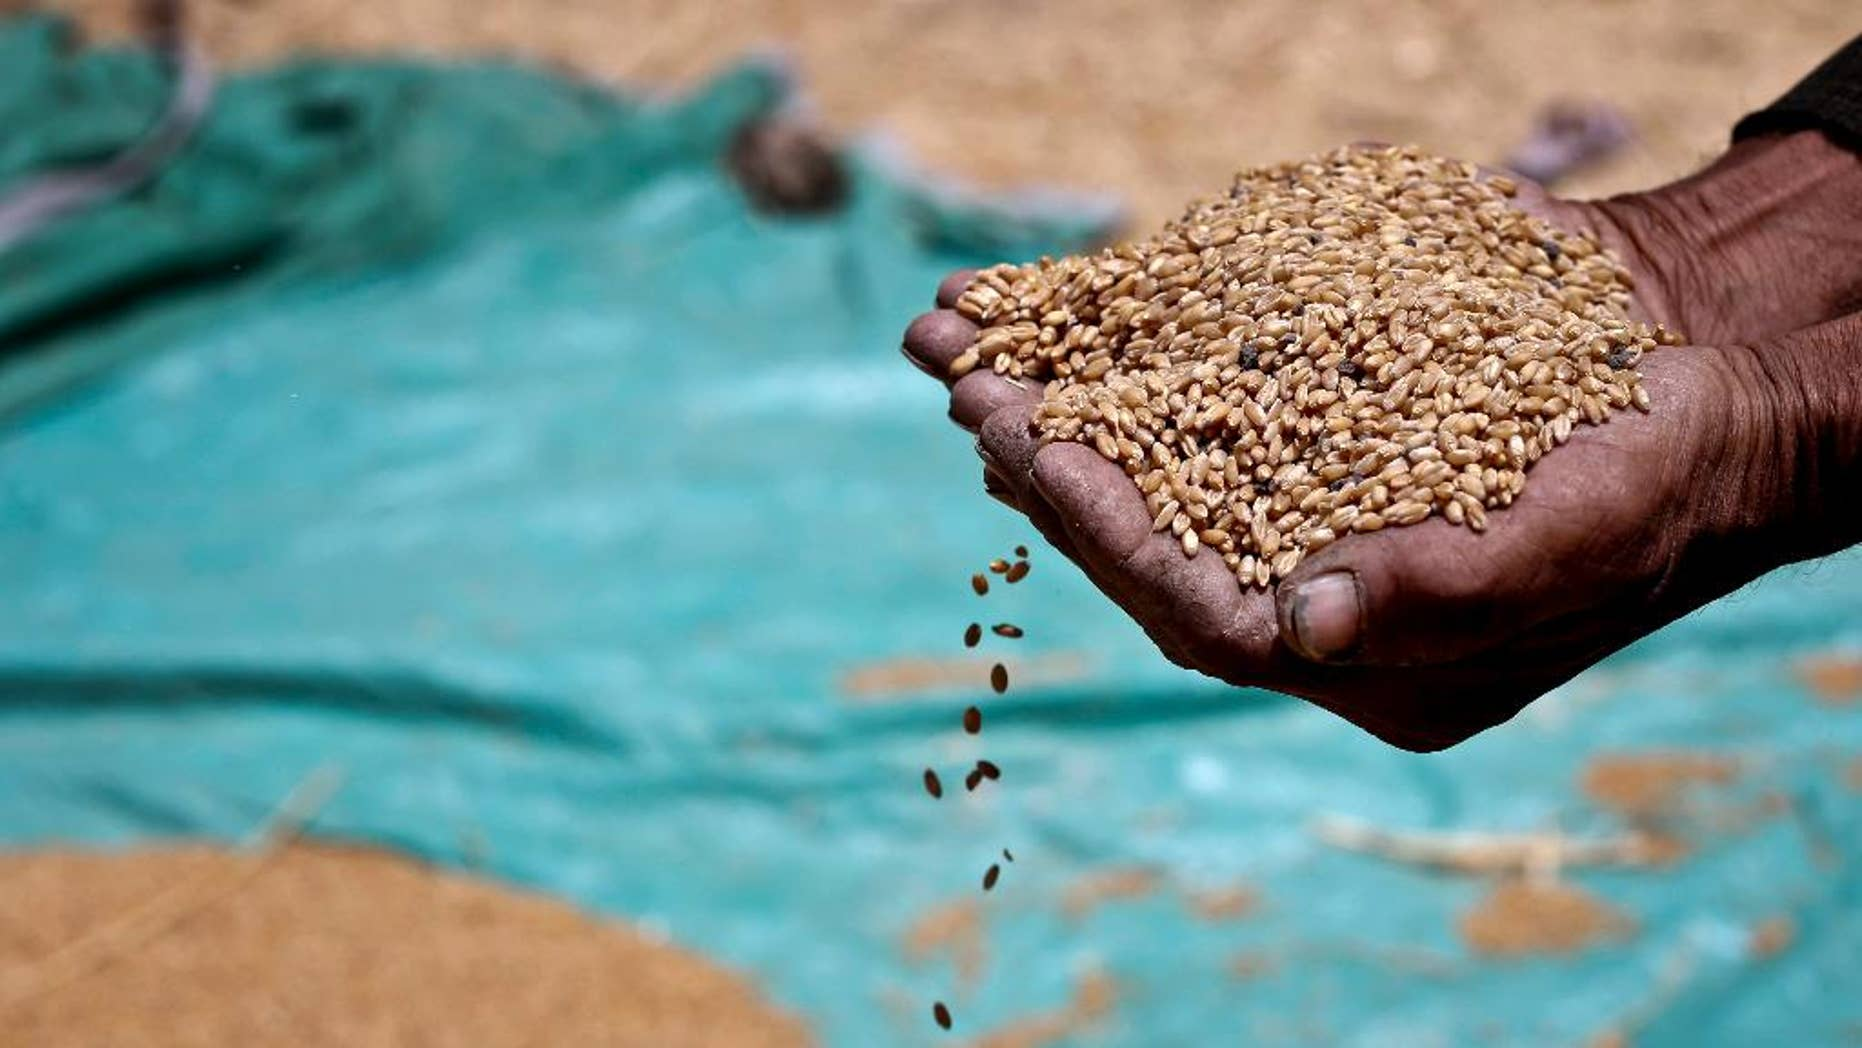 FILE - In this Sunday, May 19, 2013 file photo, a farmer holds grains of wheat in his hands on a field in Fayoum, 60 miles, (100 kilometers), south of Cairo, Egypt. Egypt's farmers have begun the annual wheat harvest. This year, it comes as the government is trying to rein in its decades-old policy of subsidizing  bread with a new electronic smart-card system. The minister of supply says that the new system will save the government money and better target the country's poorest. He also says that Egypt, the world's largest importer of wheat, will continue to rely on foreign sources for the staple crop. Unrest in Ukraine has pushed up wheat prices worldwide in recent months. (AP Photo/Hassan Ammar, File)